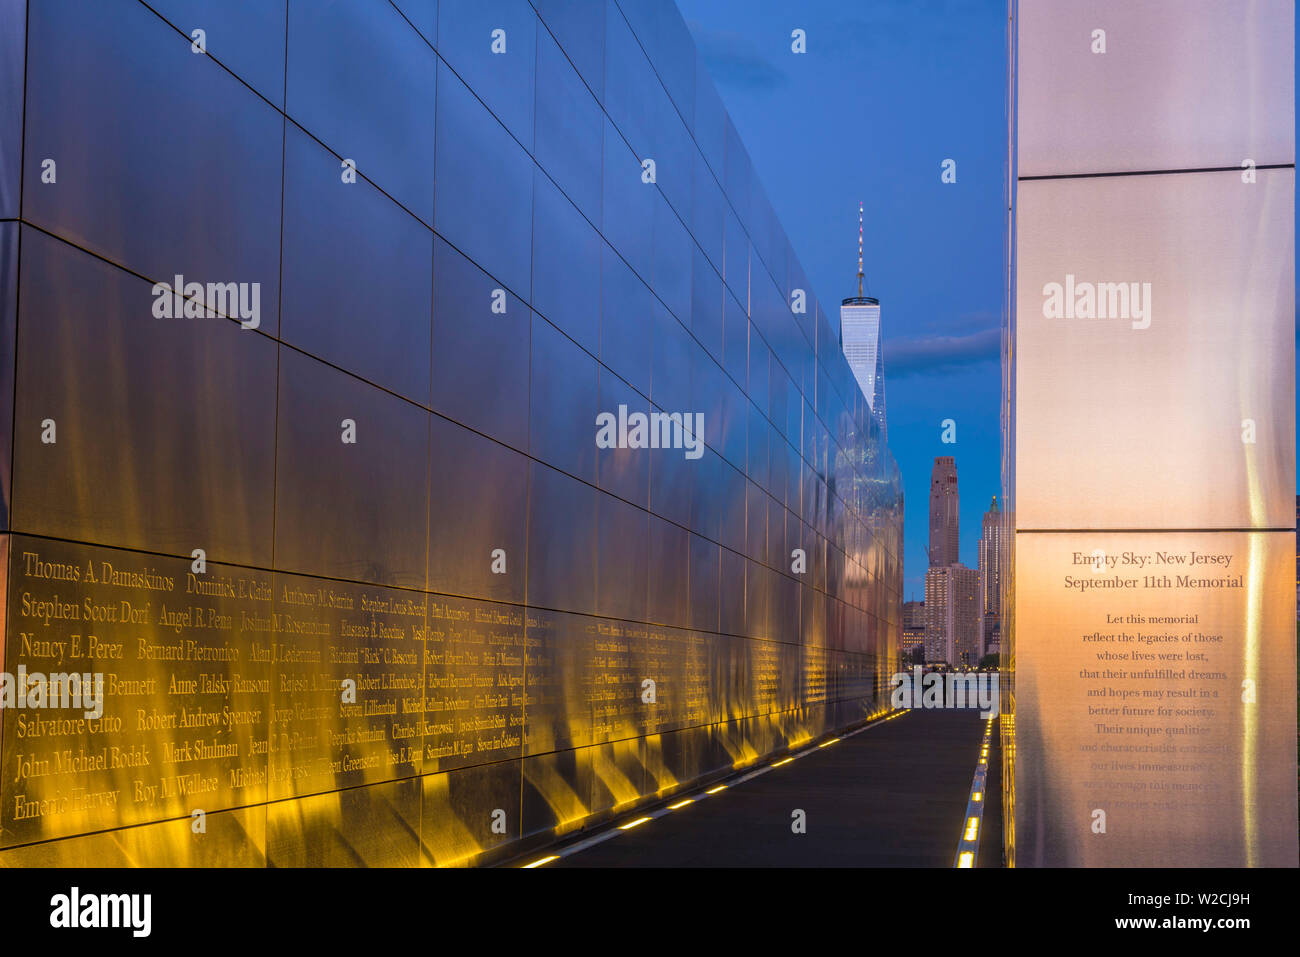 USA, New Jersey, Jersey City, Liberty State Park, Empty Sky memorial to new Jerseyans lost during 911 attacks on the World Trade Center, World Trade Center in background - Stock Image